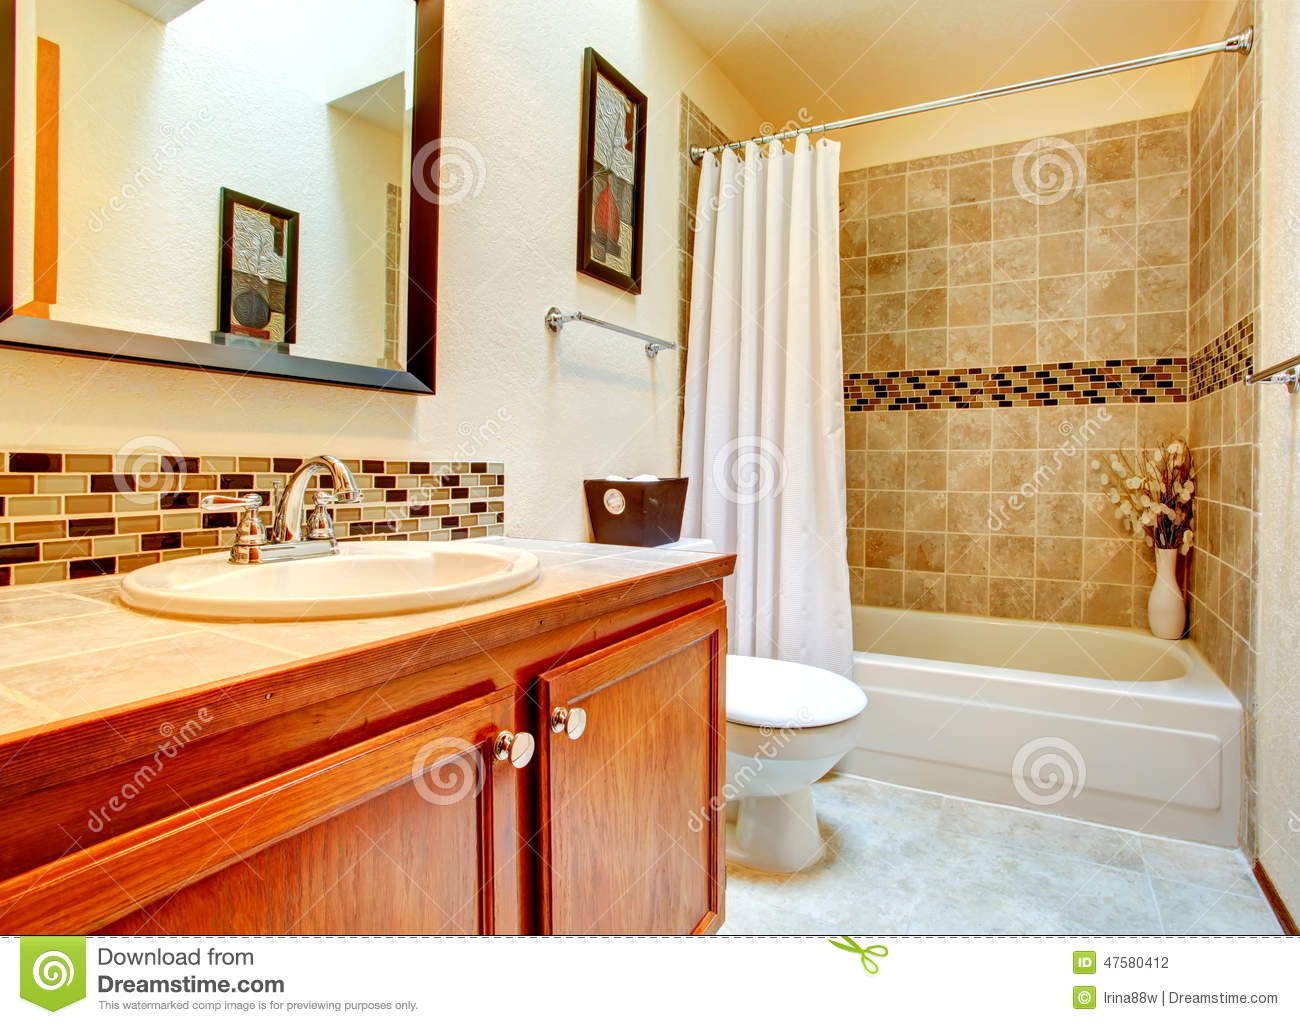 Bathroom Interior With Beige Tile Wall Trim Stock Photo Image 47580412